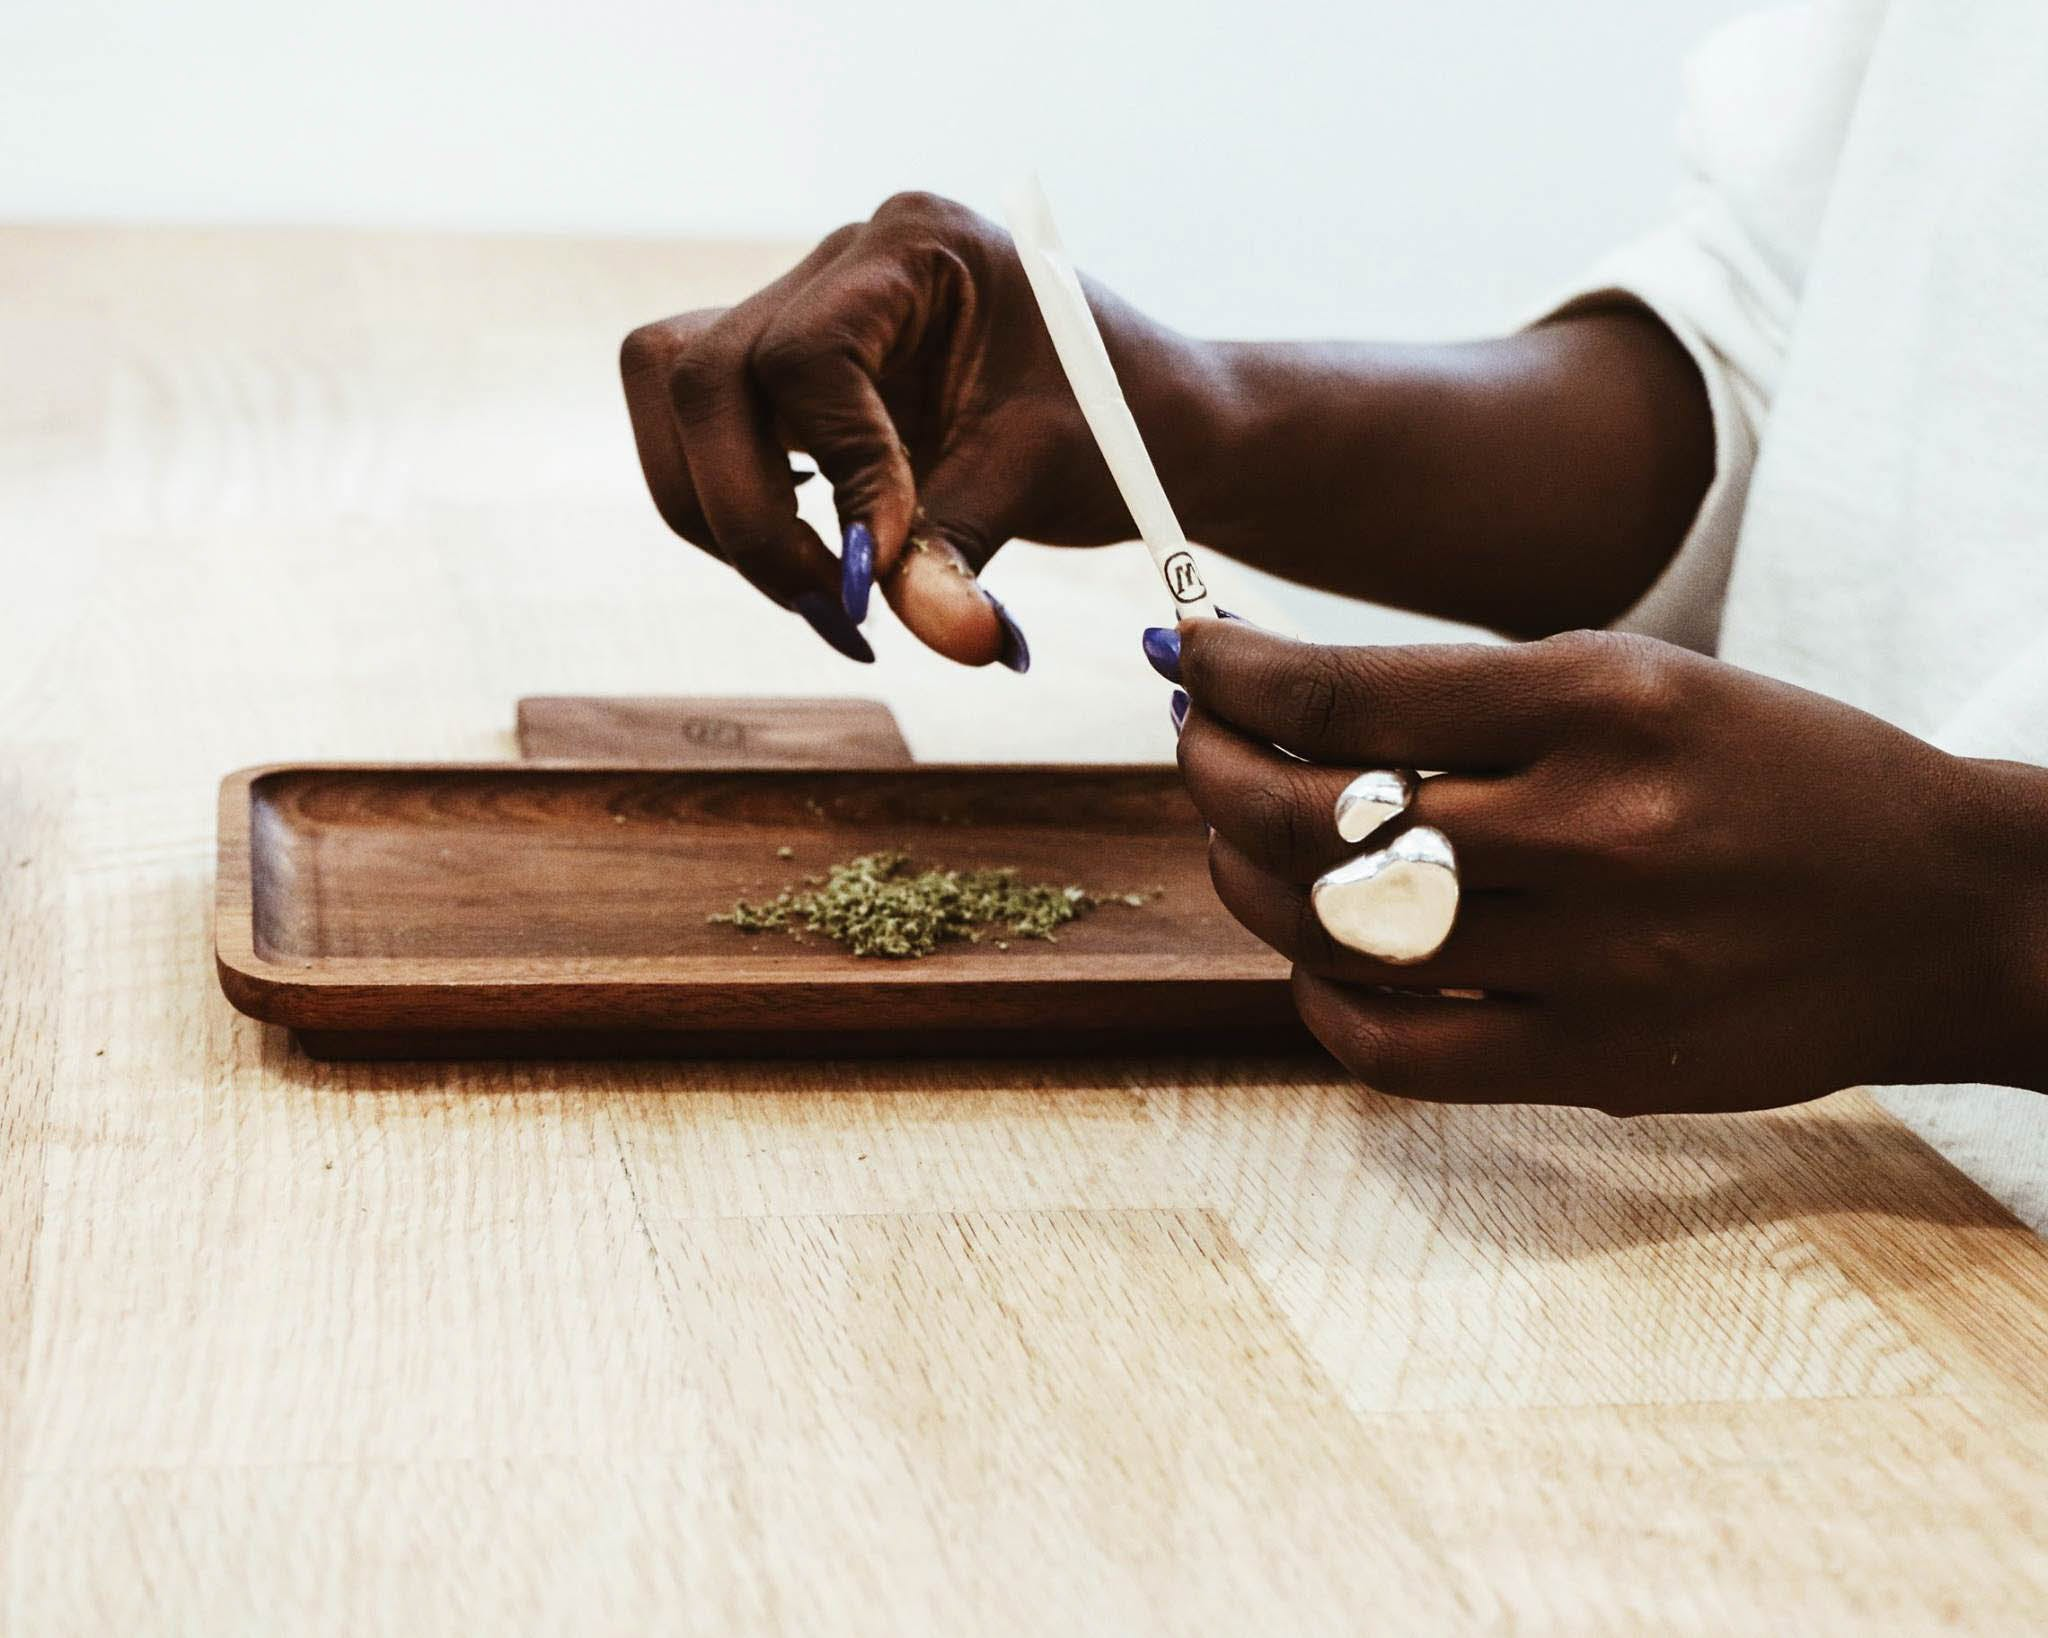 Everything you need to know to find the best rolling papers1 Caribbean Nations Are Seriously Thinking About Cannabis Decriminalization